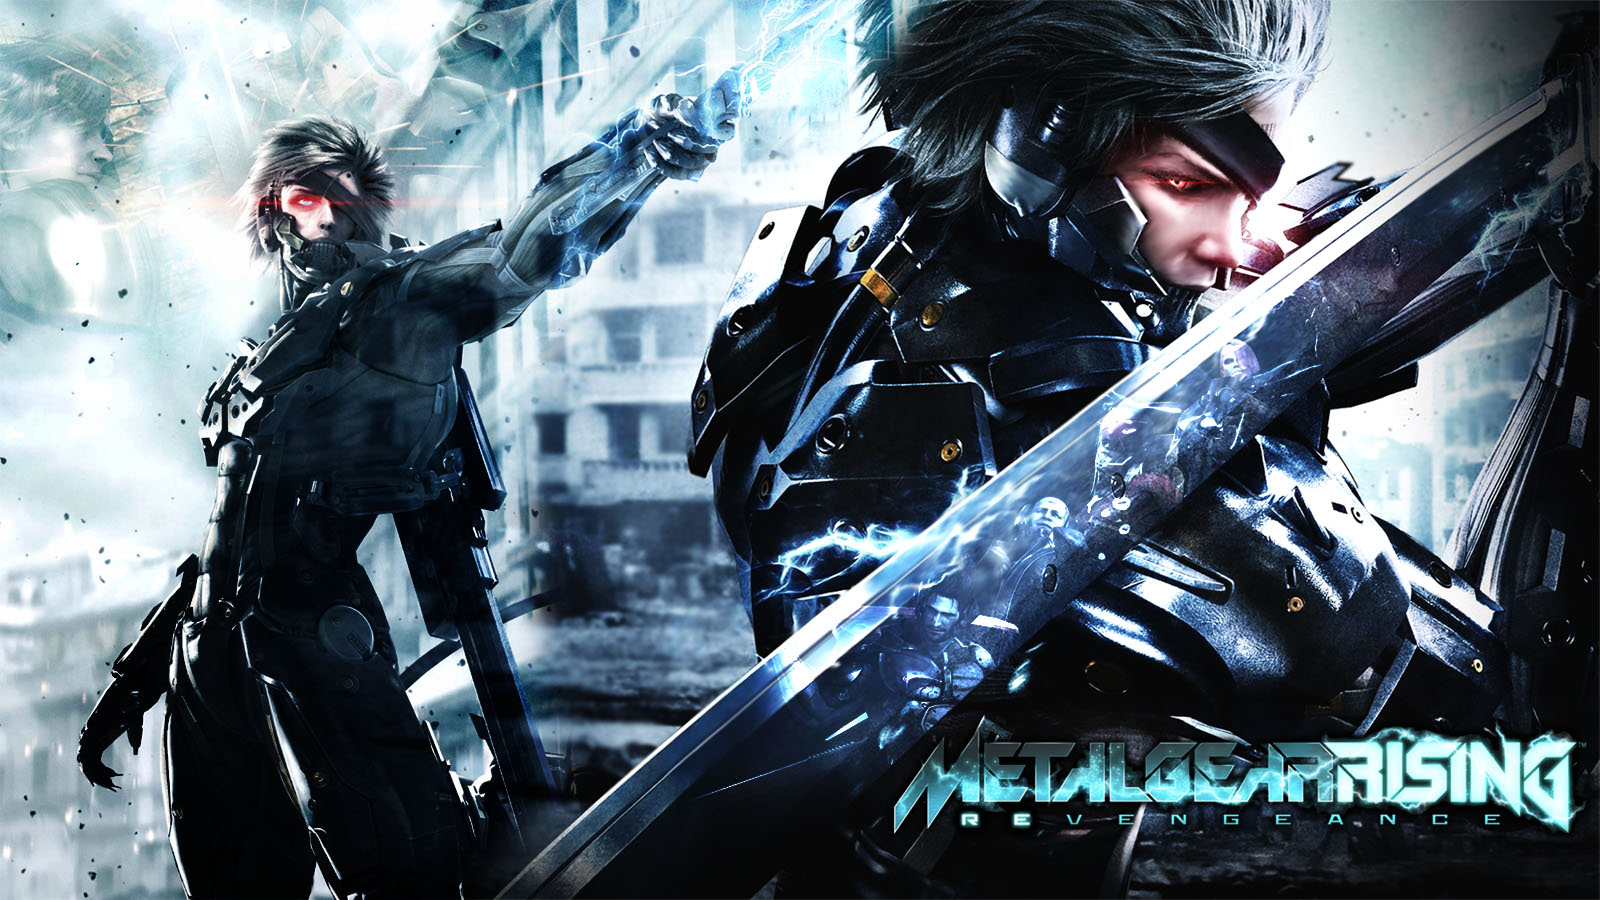 Metal gear rising revengeance by guardianpat on deviantart metal gear rising revengeance by guardianpat metal gear rising revengeance by guardianpat voltagebd Image collections